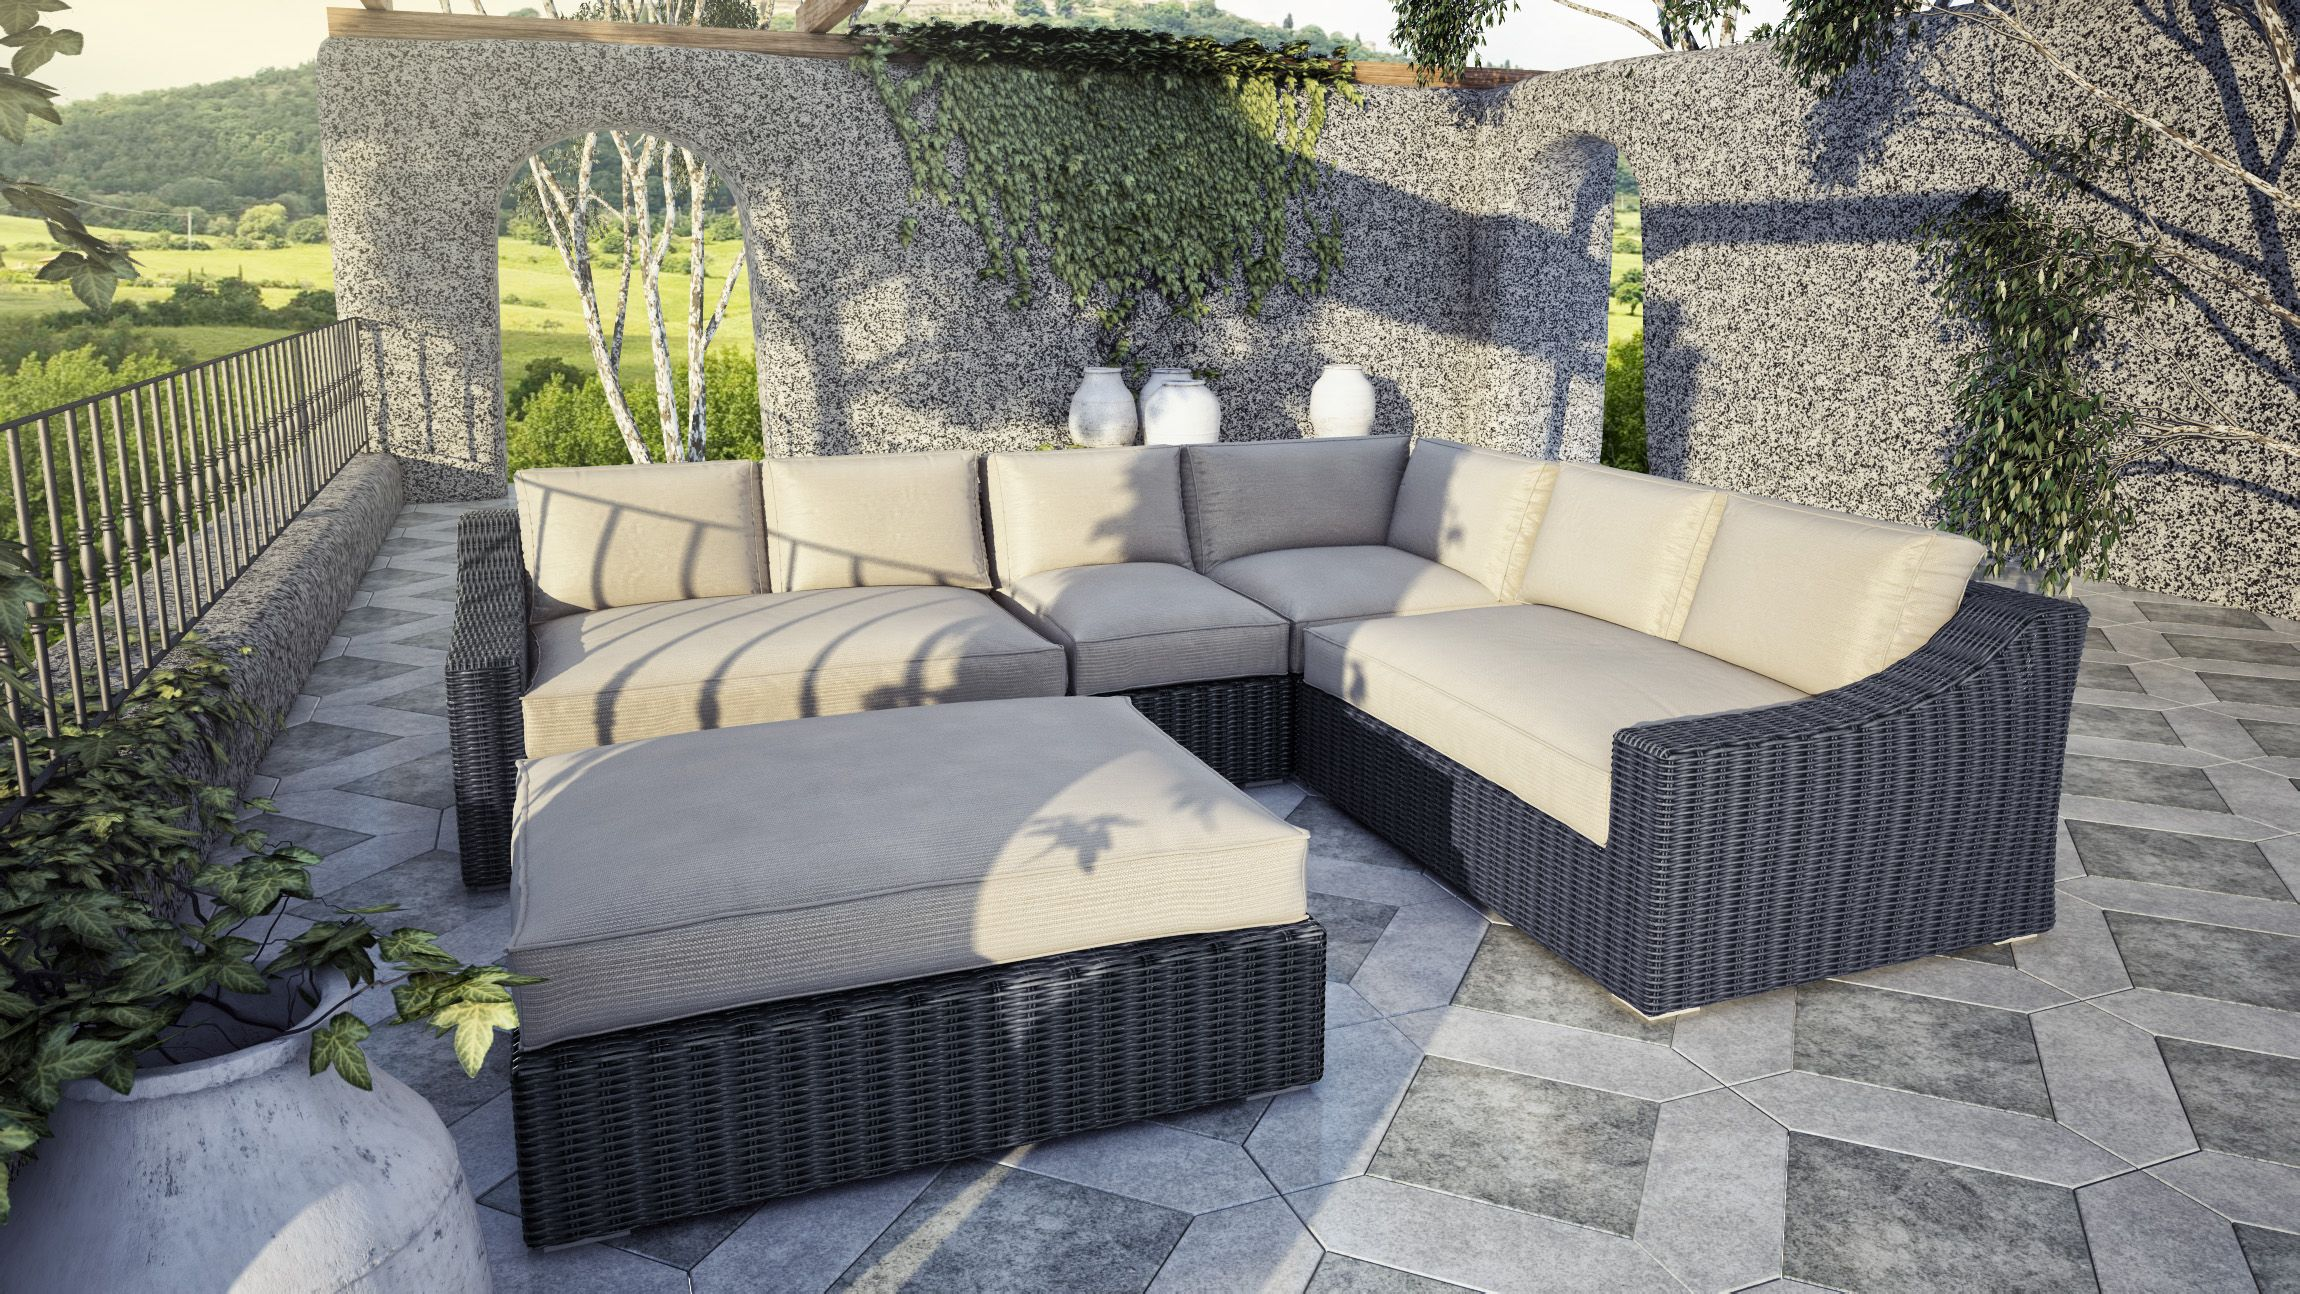 Tuscan Sectional Set Includes Left Arm 56 X41 X28 Right Arm 56 X41 X28 Corner 41 X41 X28 Middle 25 X41 X28 Furniture Outdoor Sectional Sofa Patio Chairs